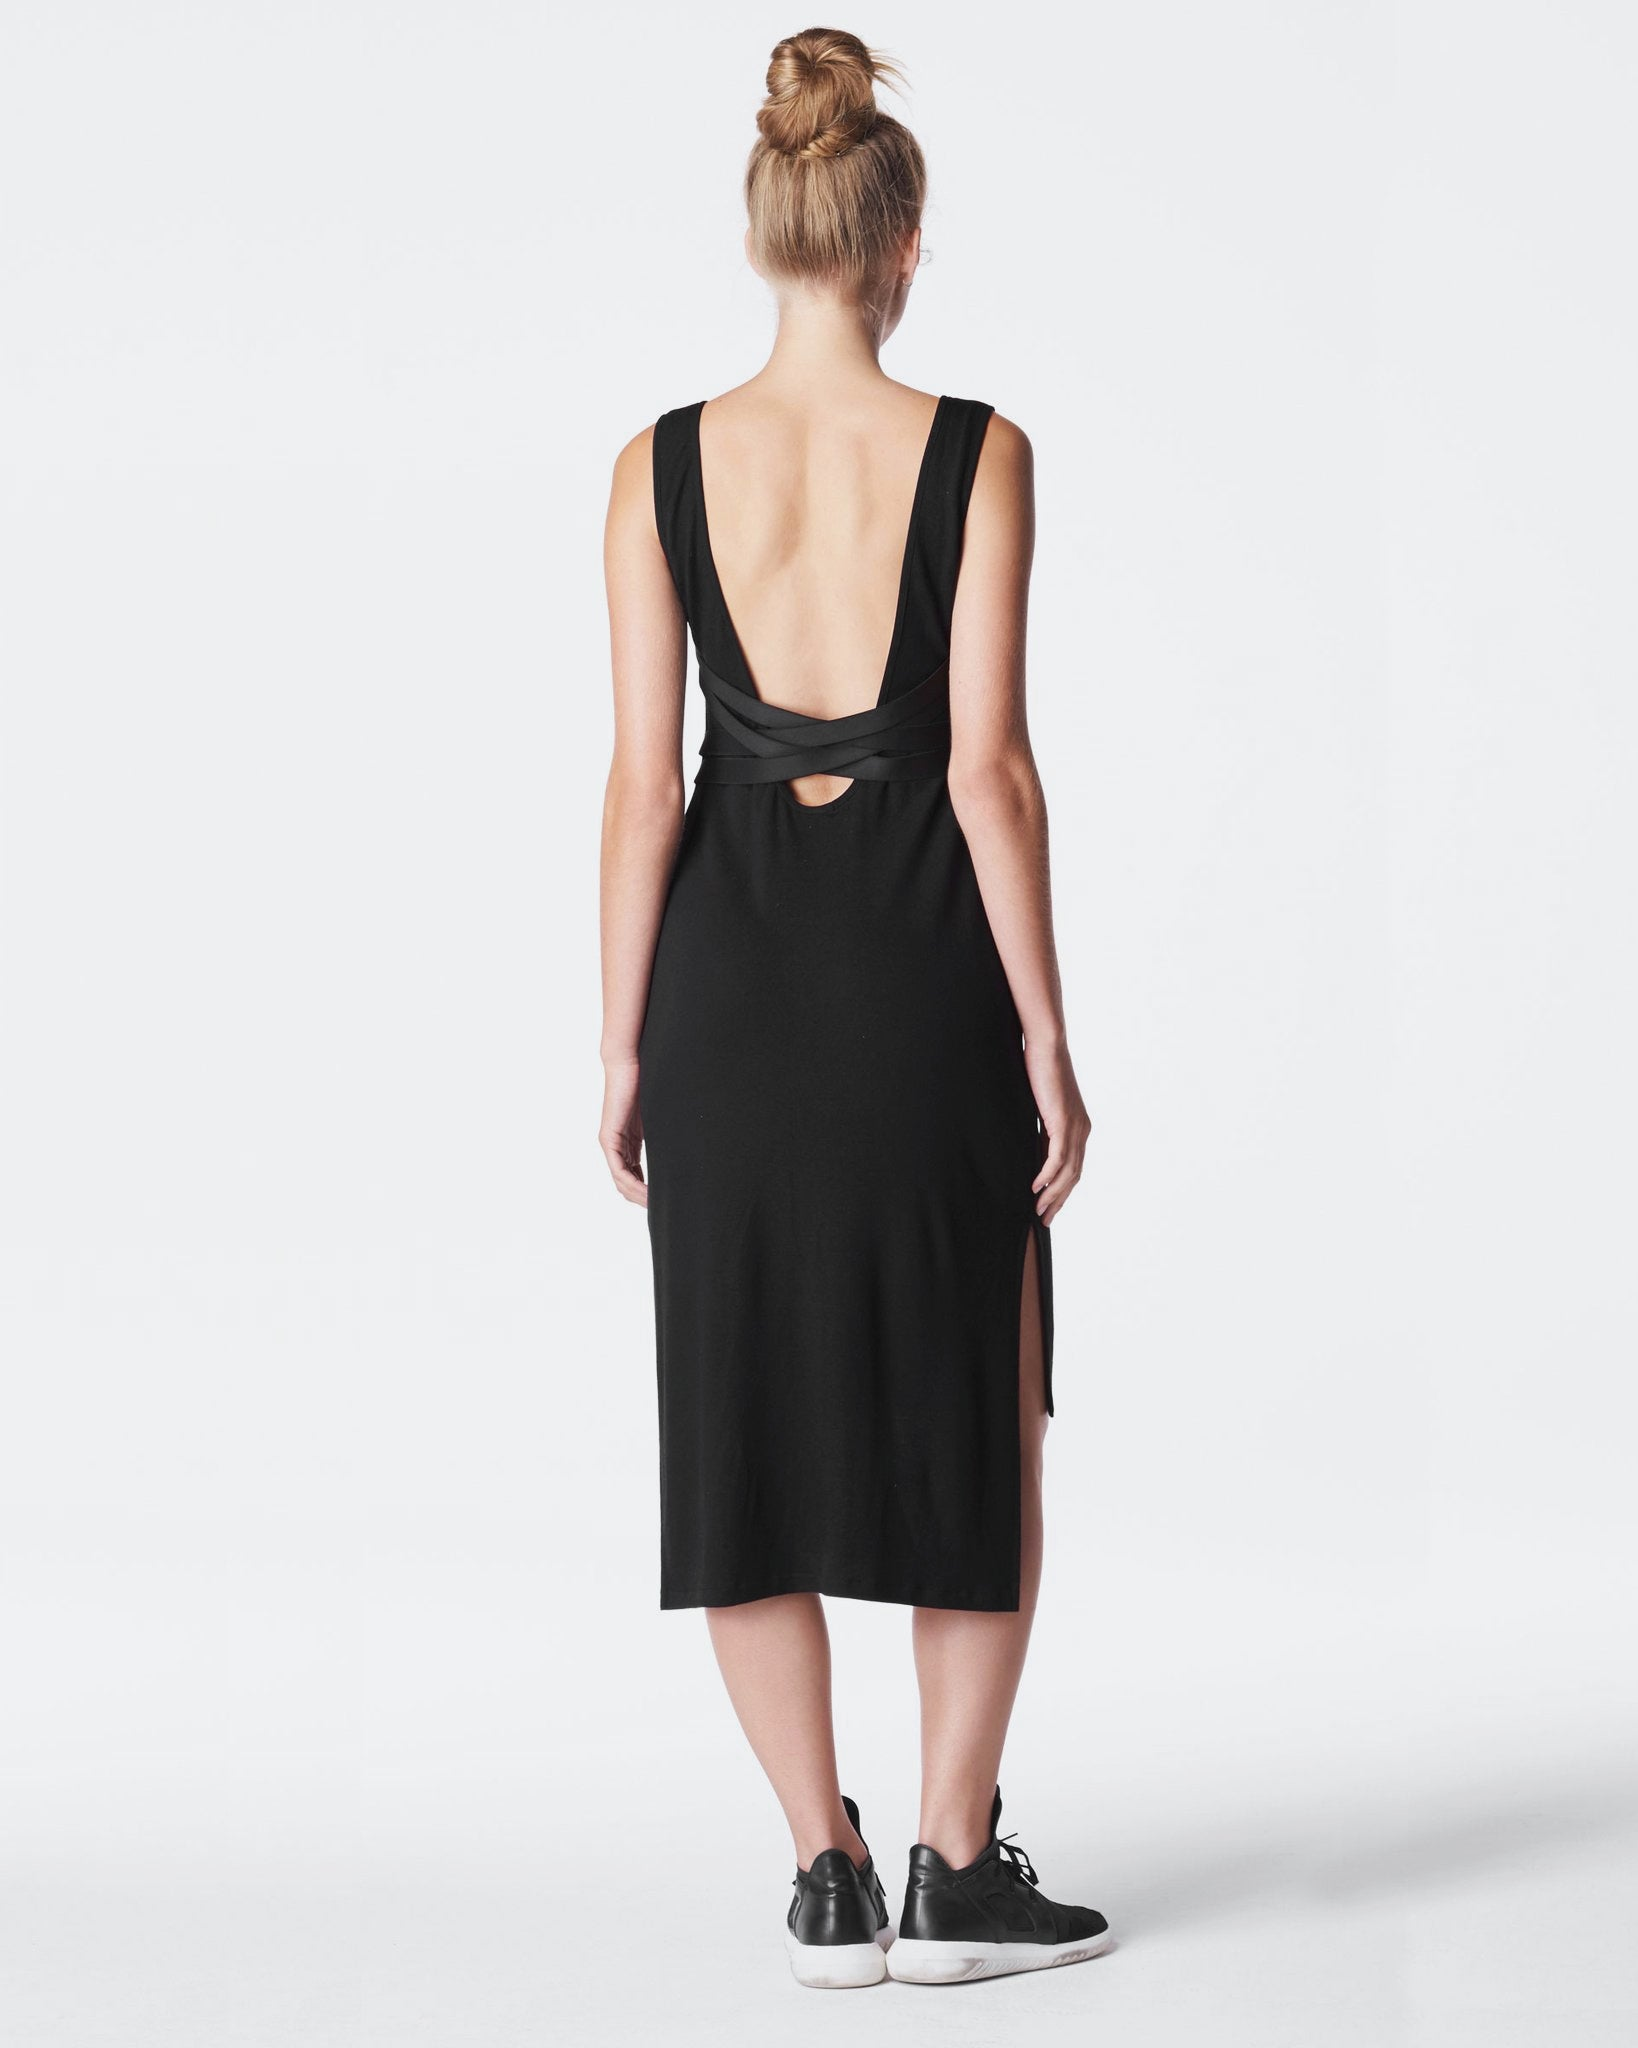 shadow-dress-black